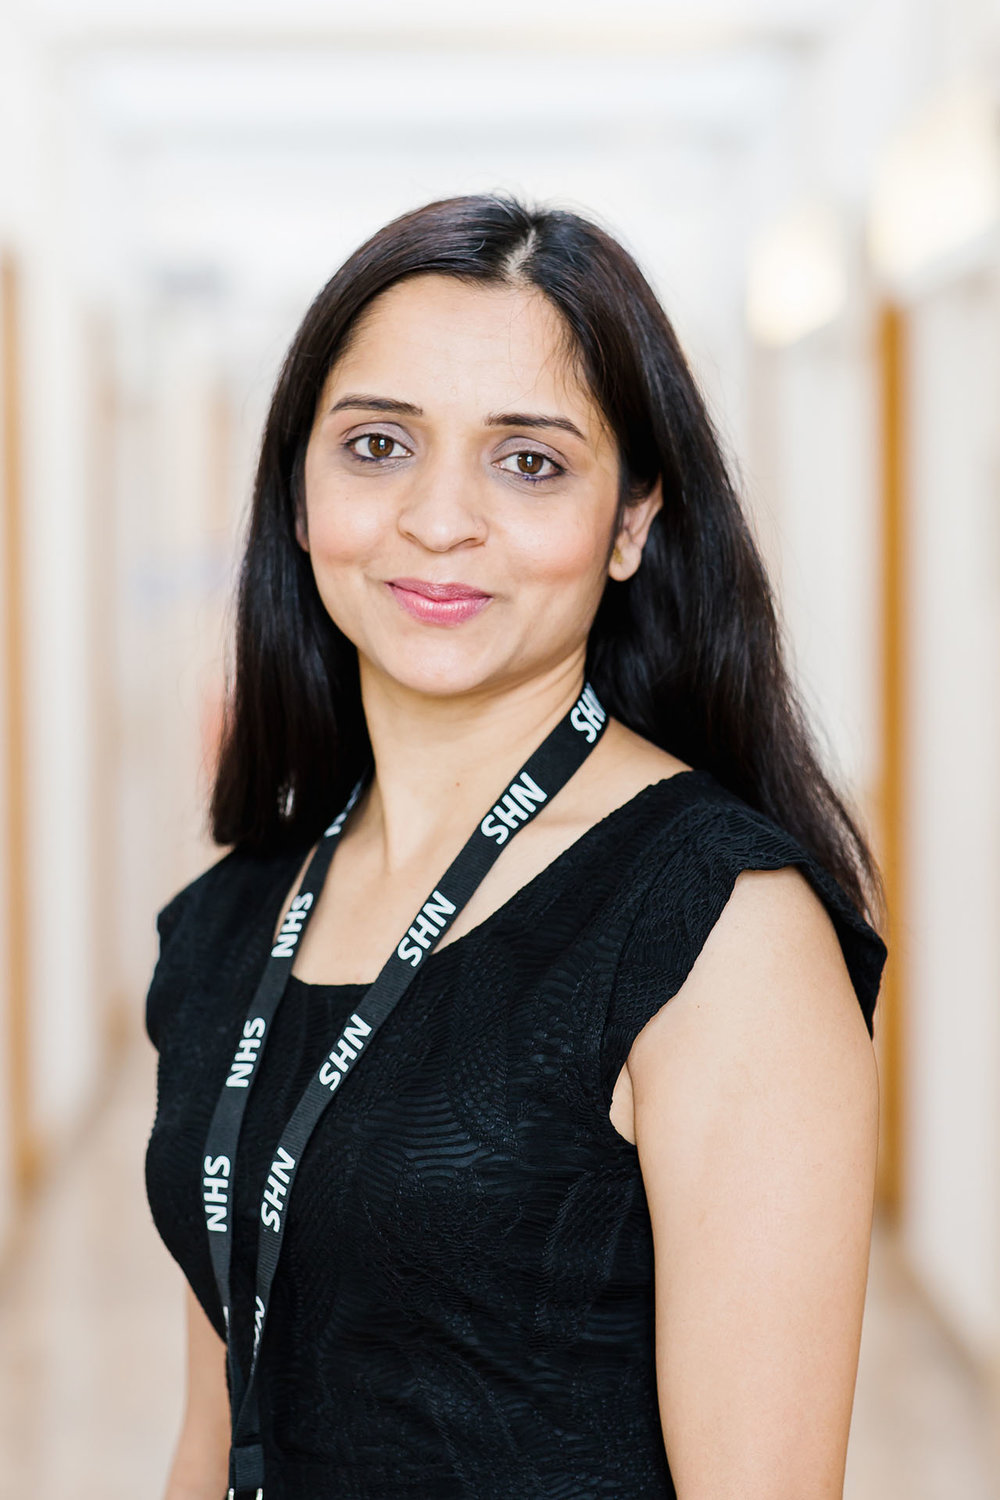 Ms Kavita Patel (Medical Receptionist) - Languages: Gujarati, Hindi Kavita joined the practice in August 2017. She was previously working in retail and customer care.